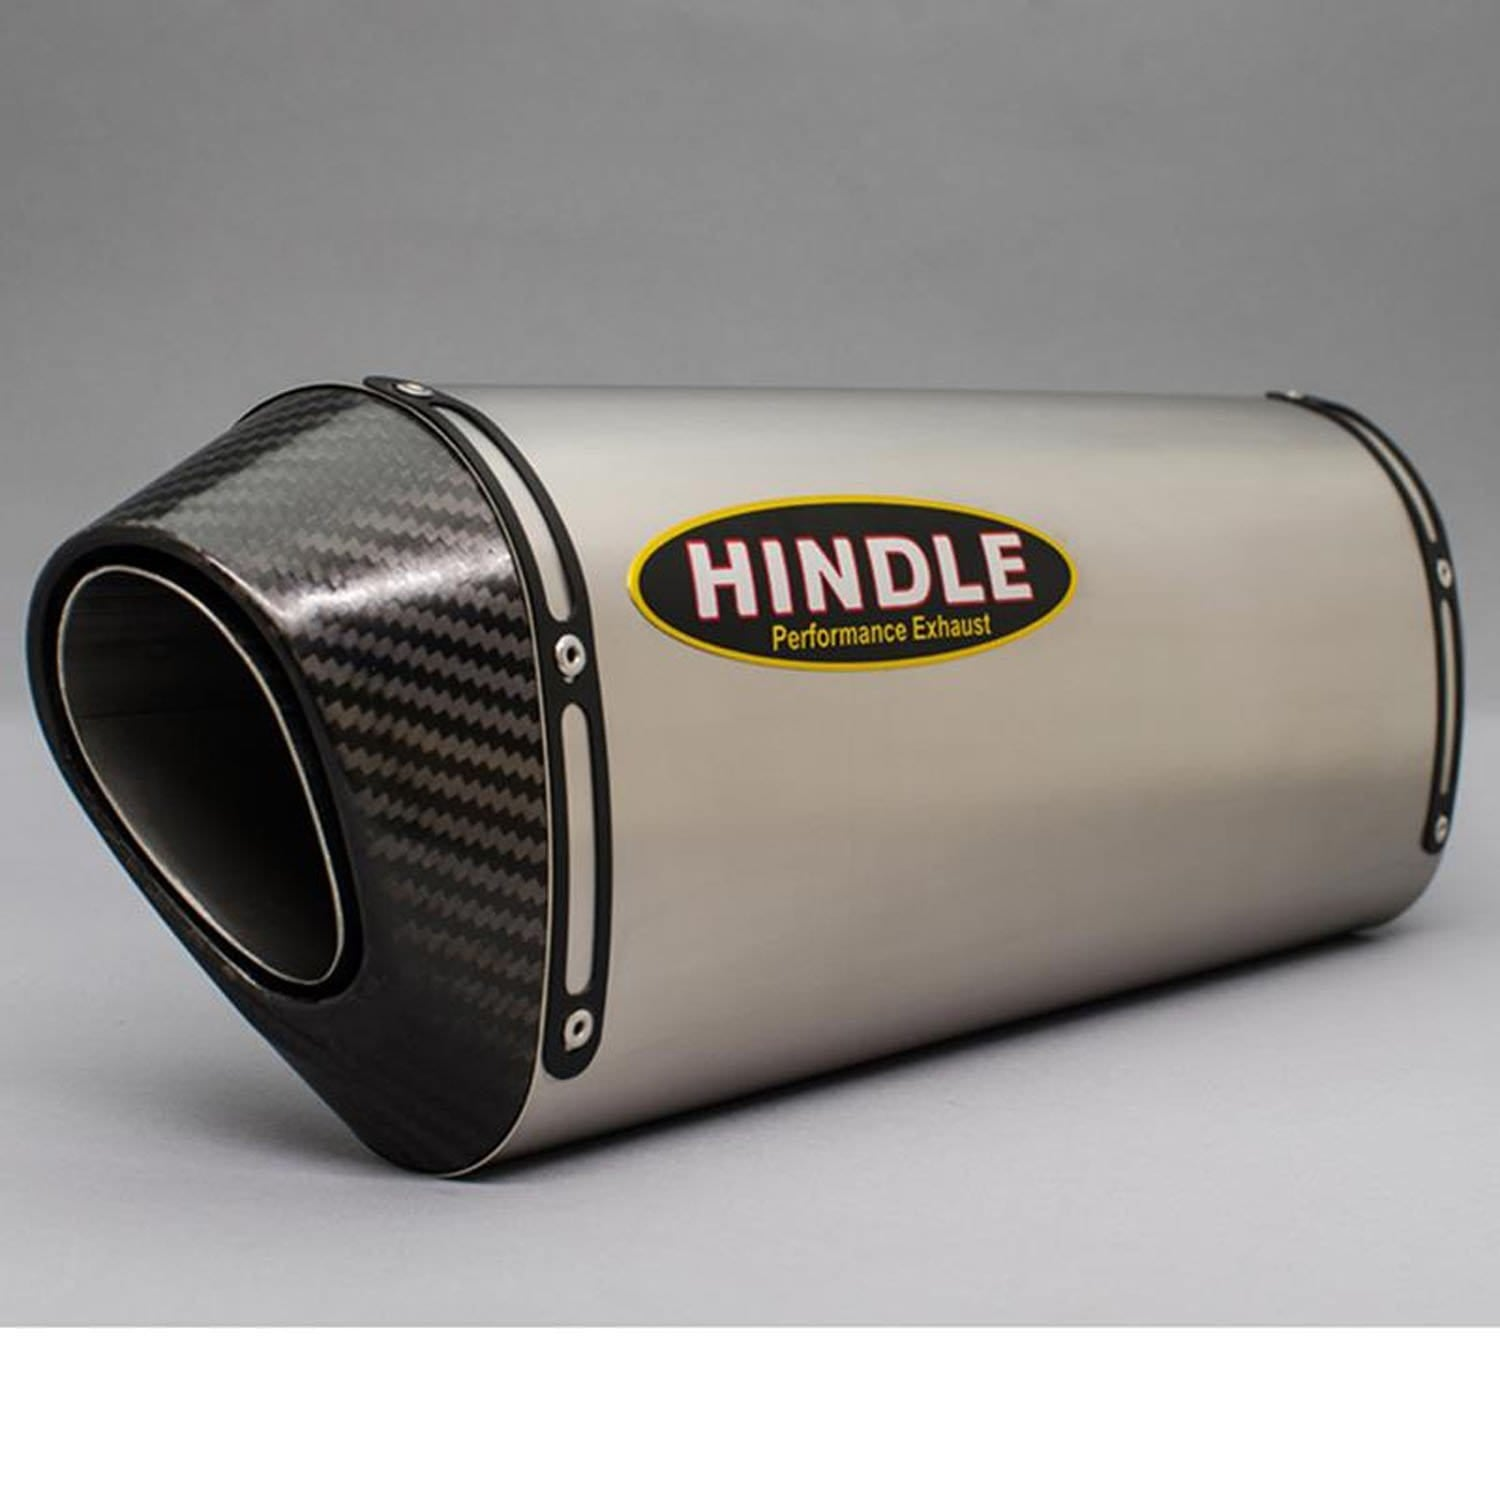 Hindle Evolution Full System Yamaha FJ09 2015-18